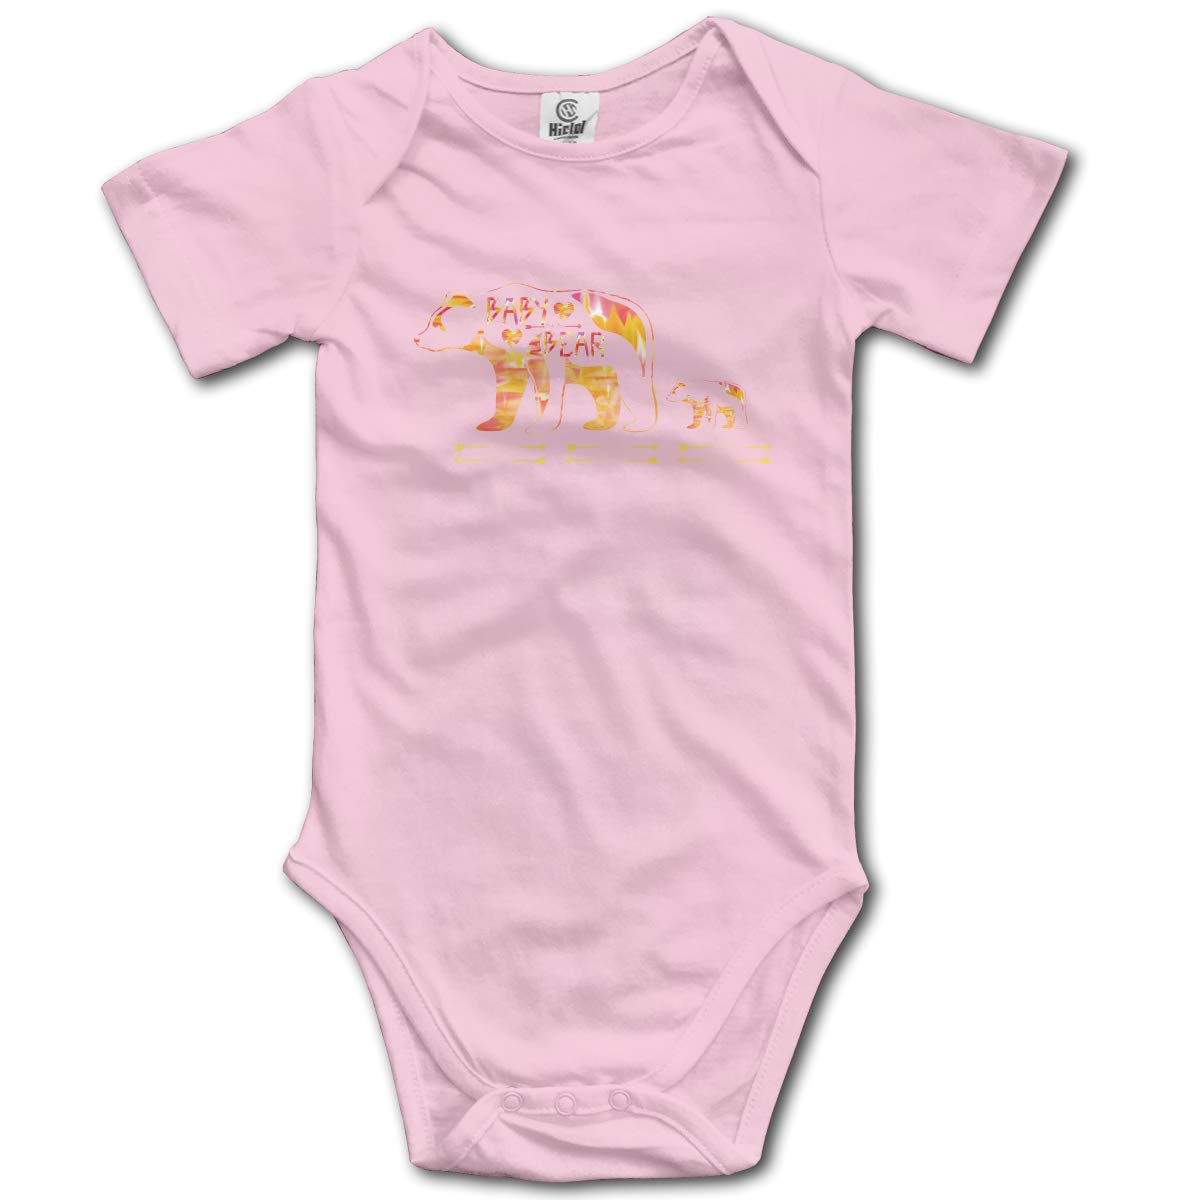 Papa Mama Baby Bear Cub Youth Boys /& Girls Black Short Sleeve Romper Triangle Romper for 0-24 Months